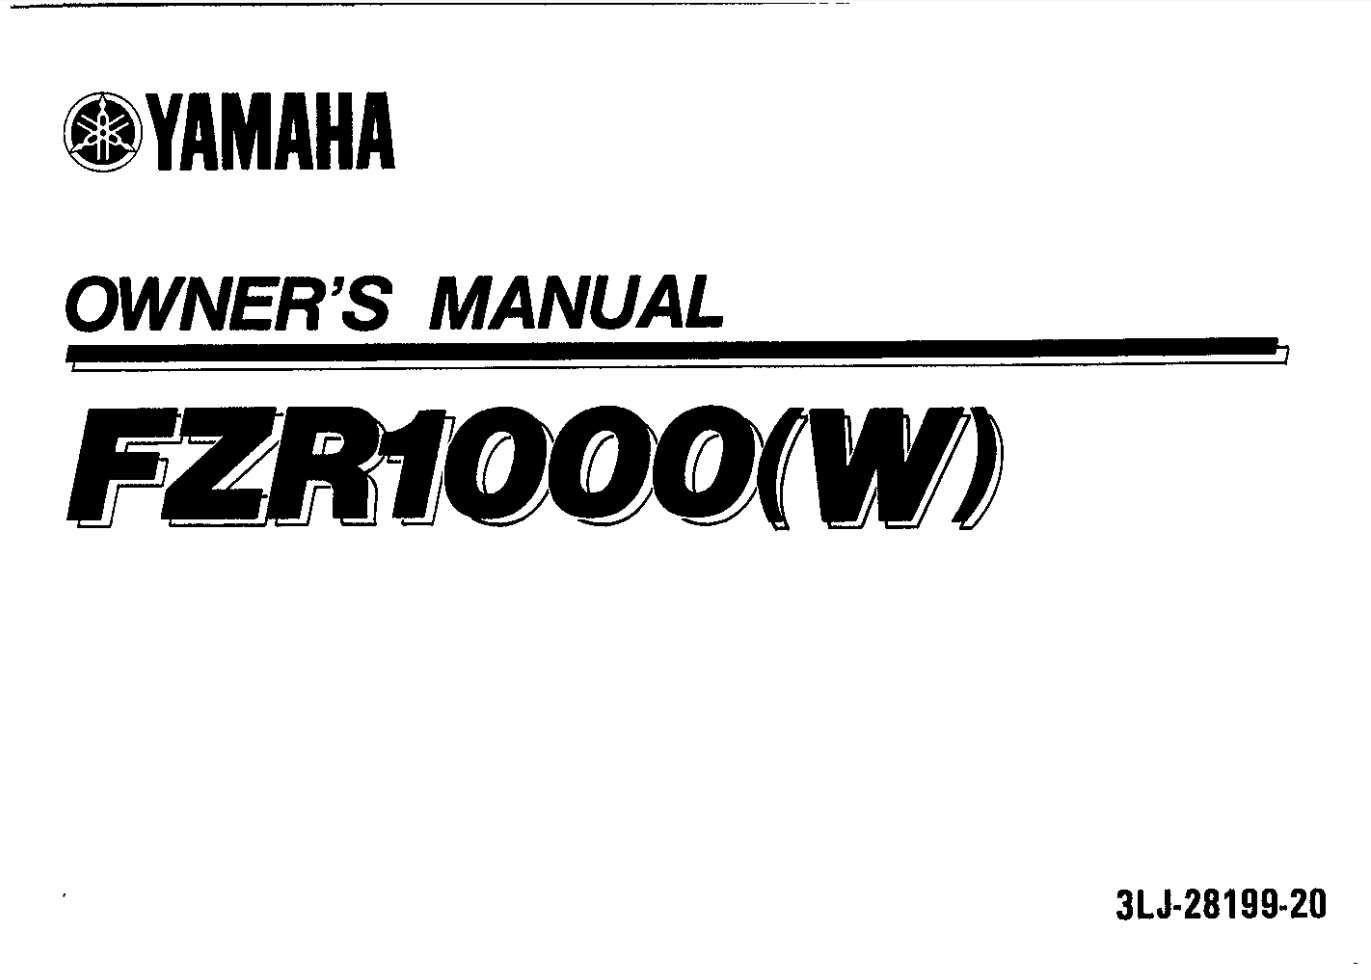 Yamaha Fzs1000 W 1989 Owner S Manual Manual Owners Manuals Yamaha